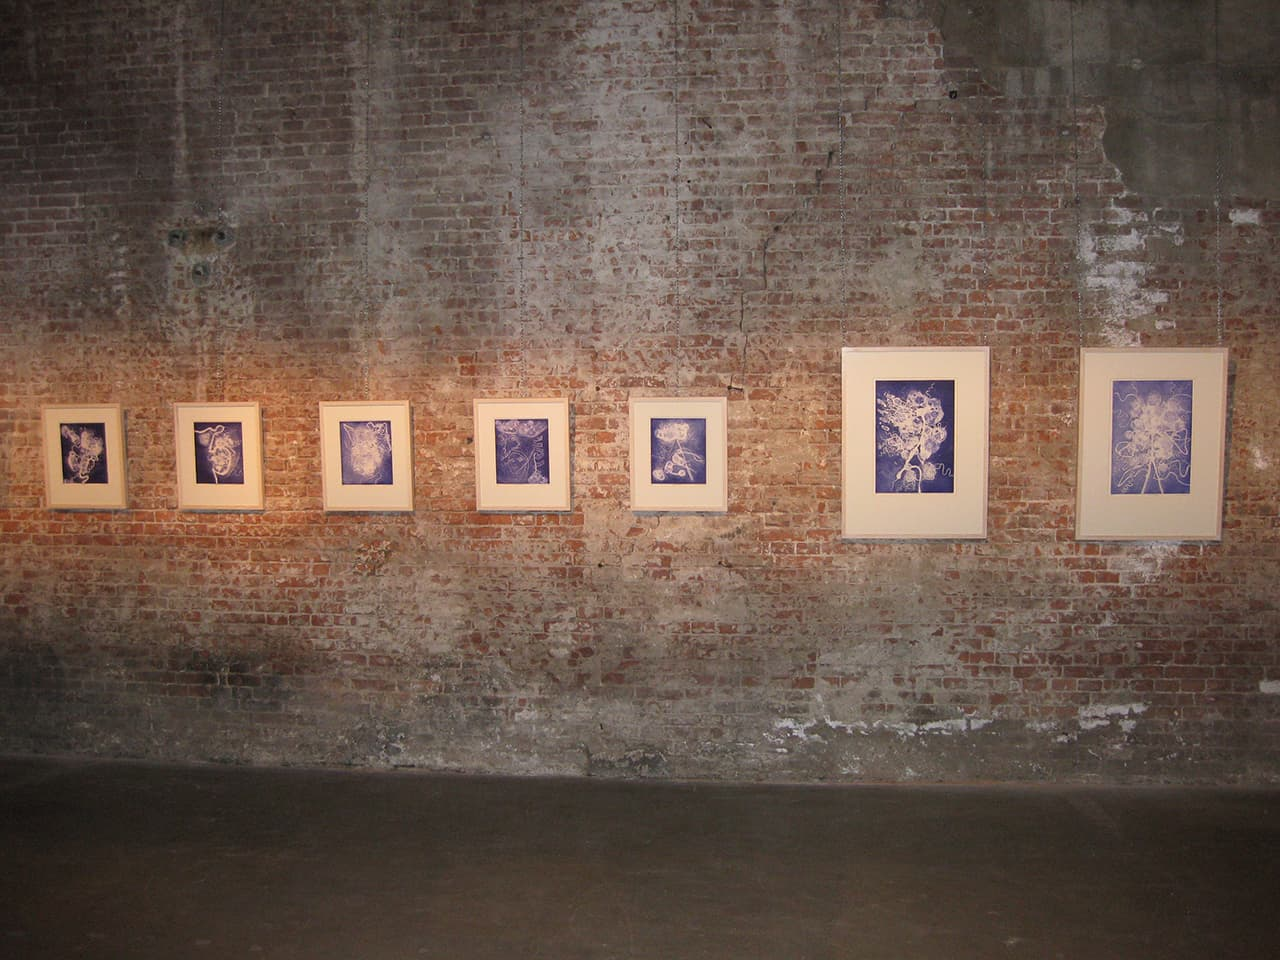 <strong>Brainscapes</strong>, Susan Aldworth, 2006, etching and aquatint prints, 30 x 25 cms and 50 x 35 cms. Installation at Scheltema Contemporary Gallery, Leiden, 2010.